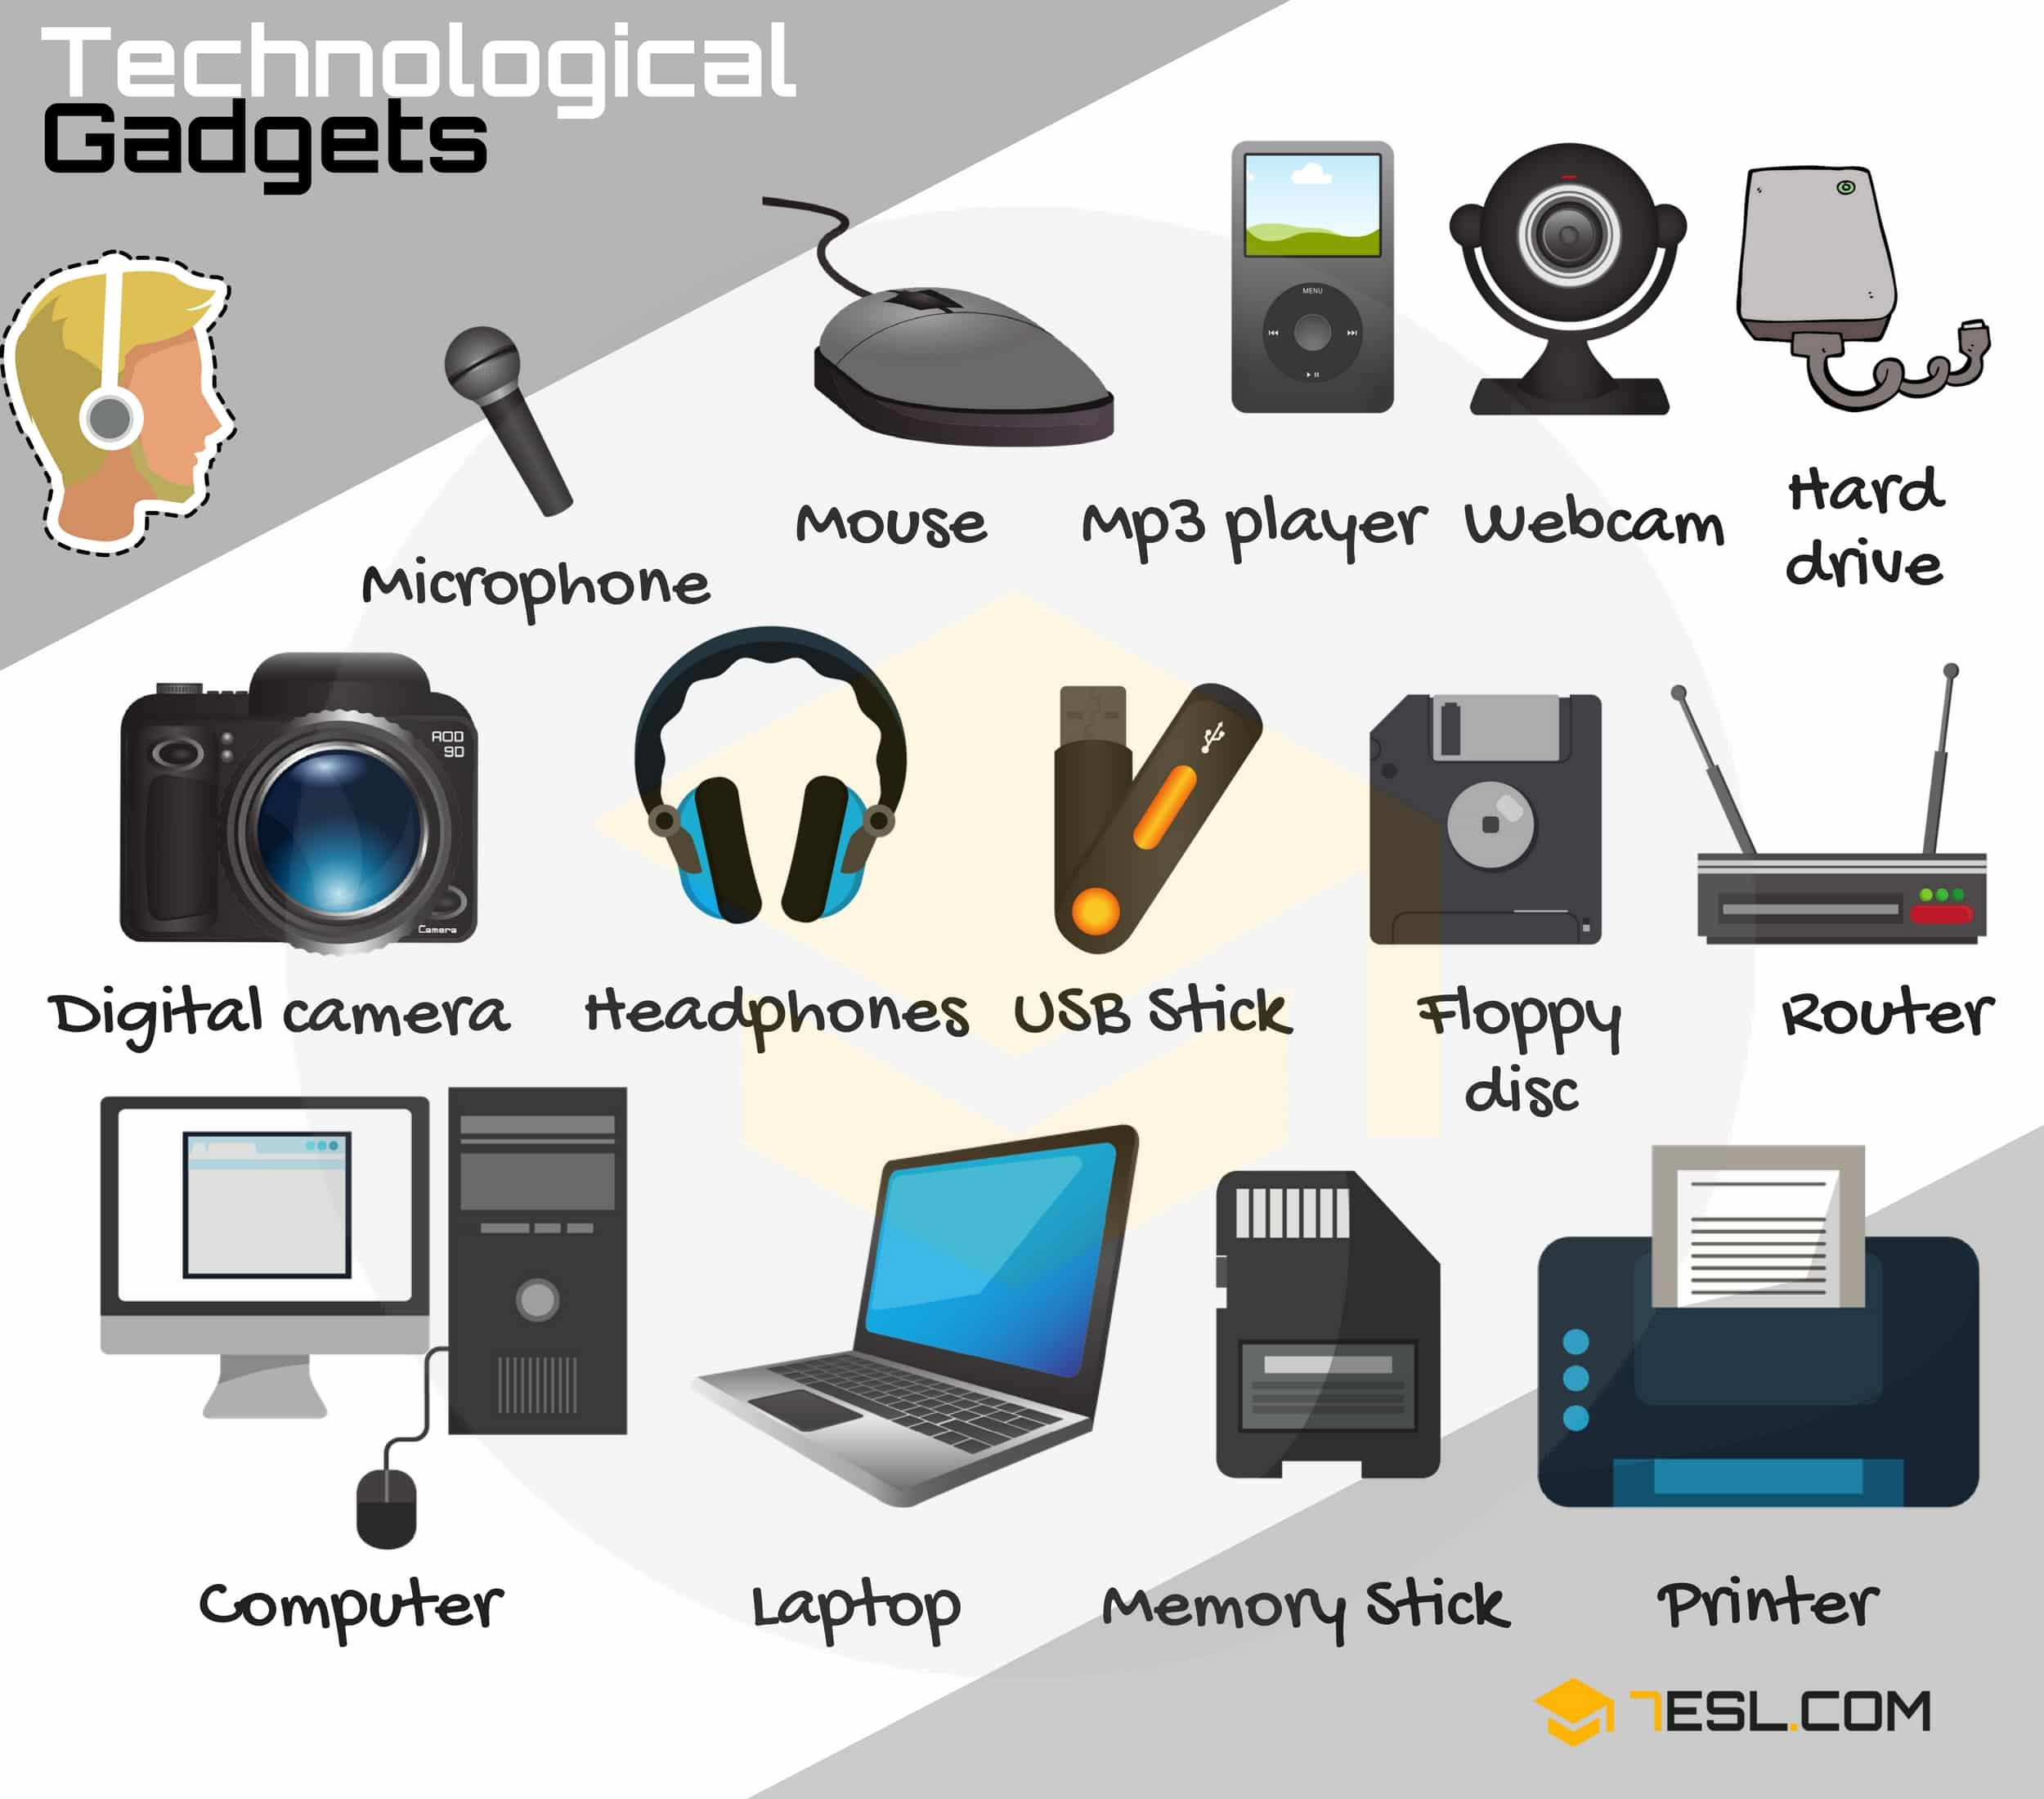 Technological Gadgets Vocabulary